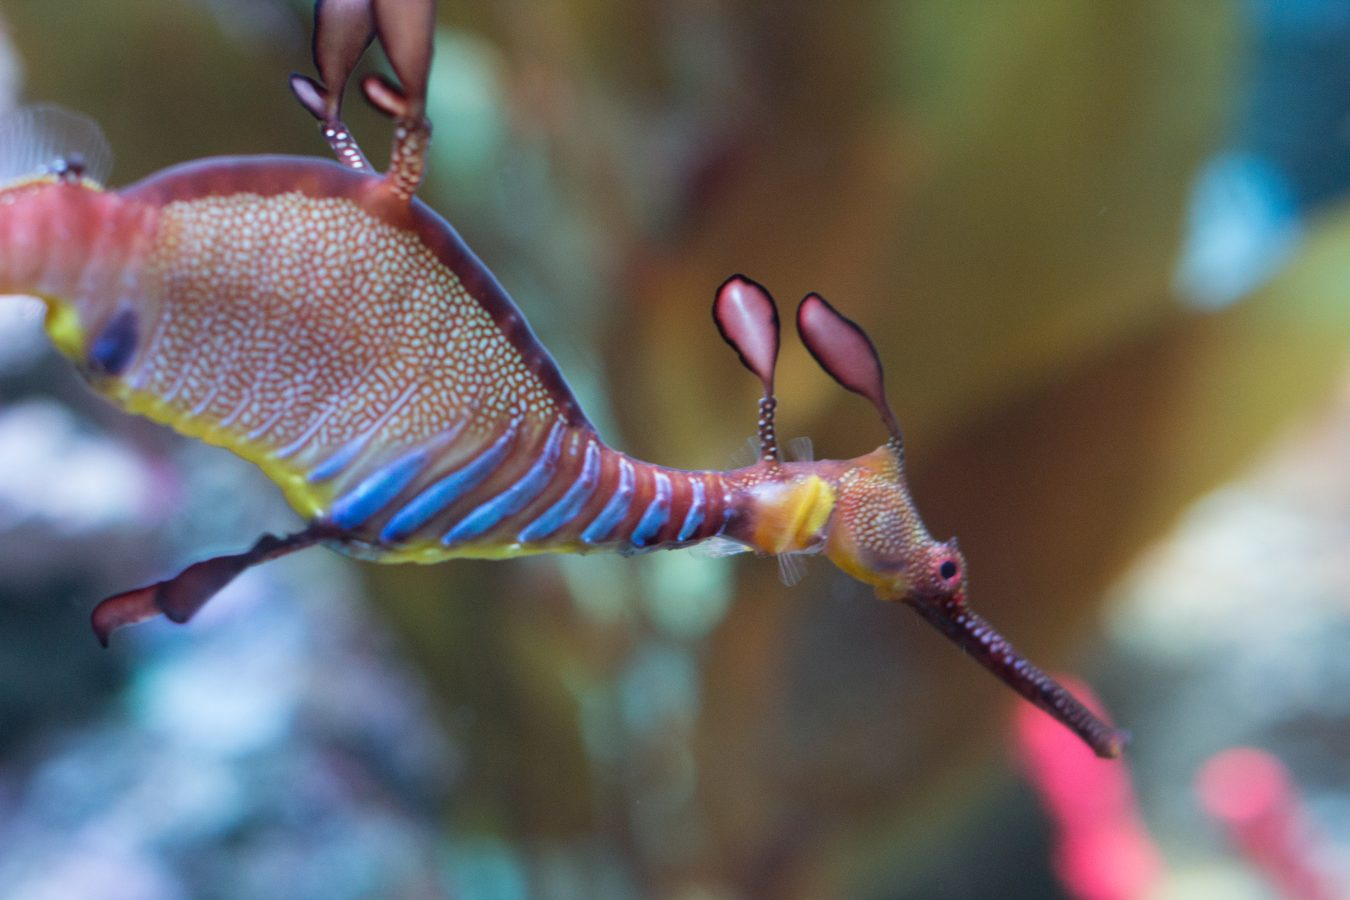 weedy seadragon swimming through its exhibit